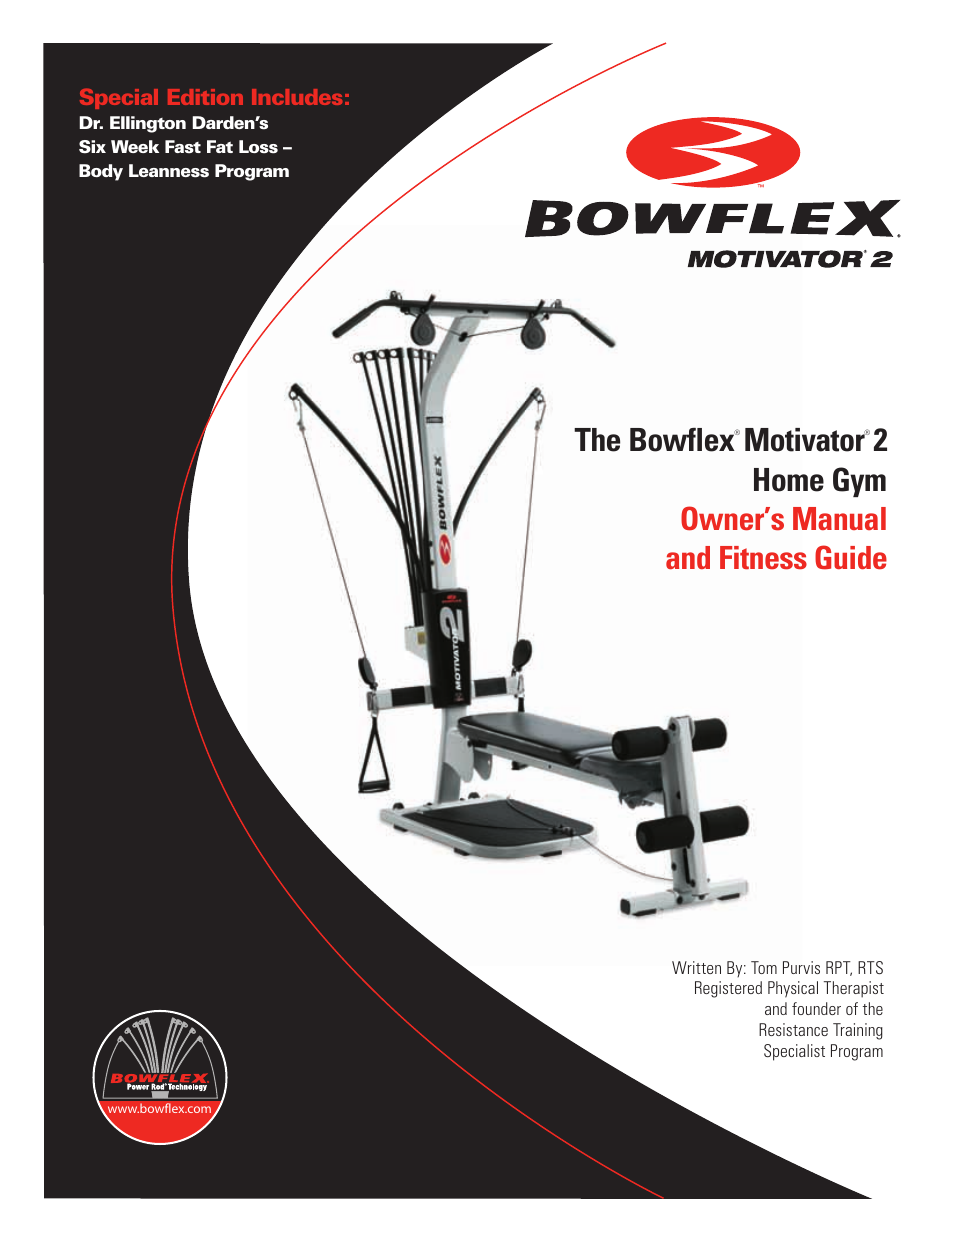 bowflex motivator 2 user manual 66 pages rh manualsdir com Bowflex Motivator 2 Poster Bowflex Motivator 2 Workouts